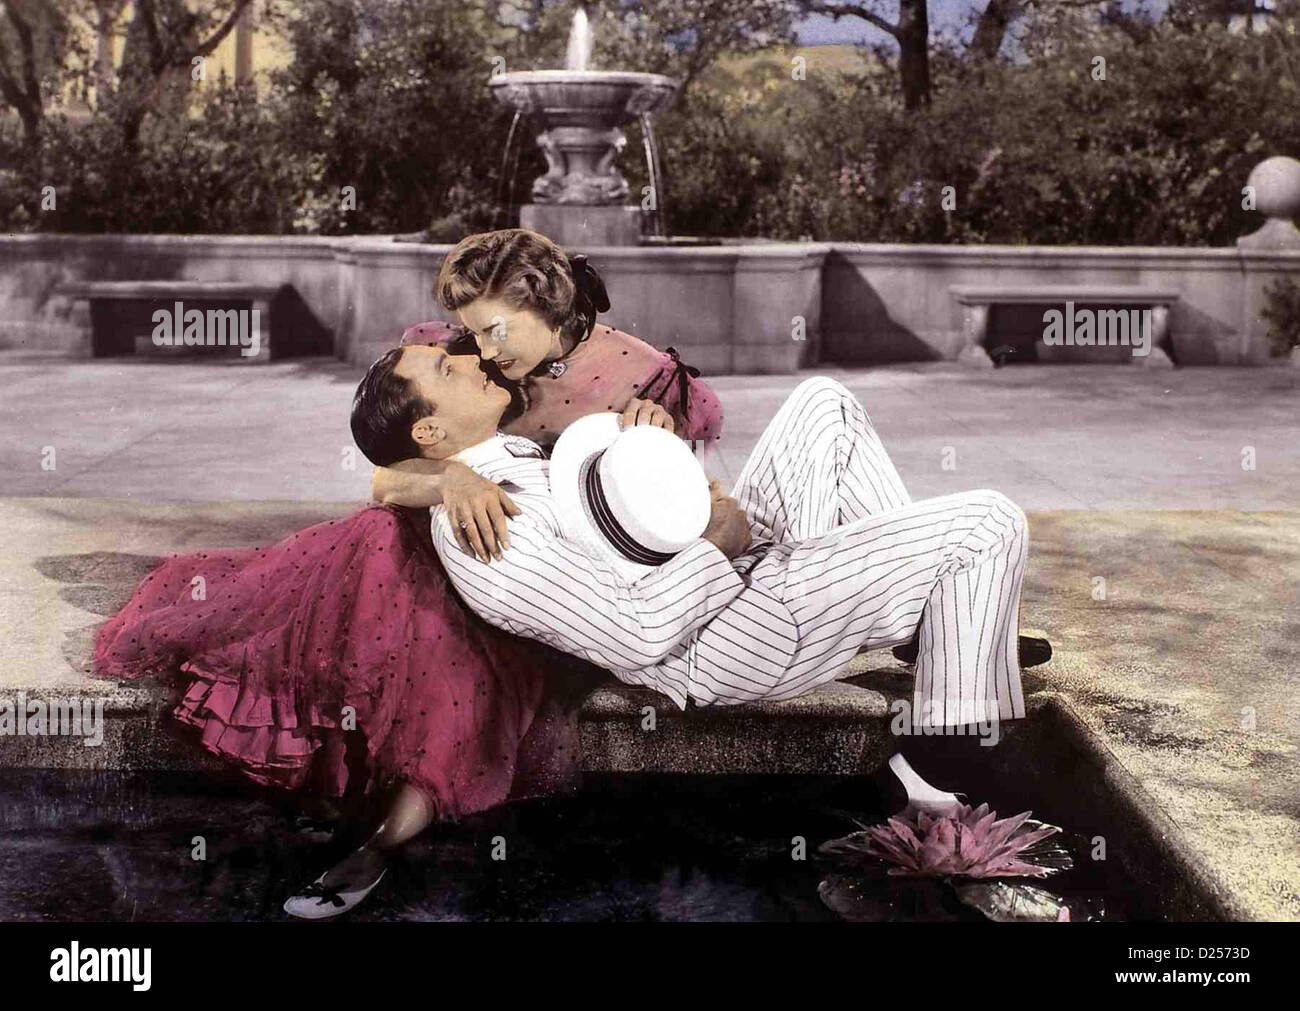 spiel zu dritt take me out to ball game gene kelly esther williams stock photo royalty free. Black Bedroom Furniture Sets. Home Design Ideas